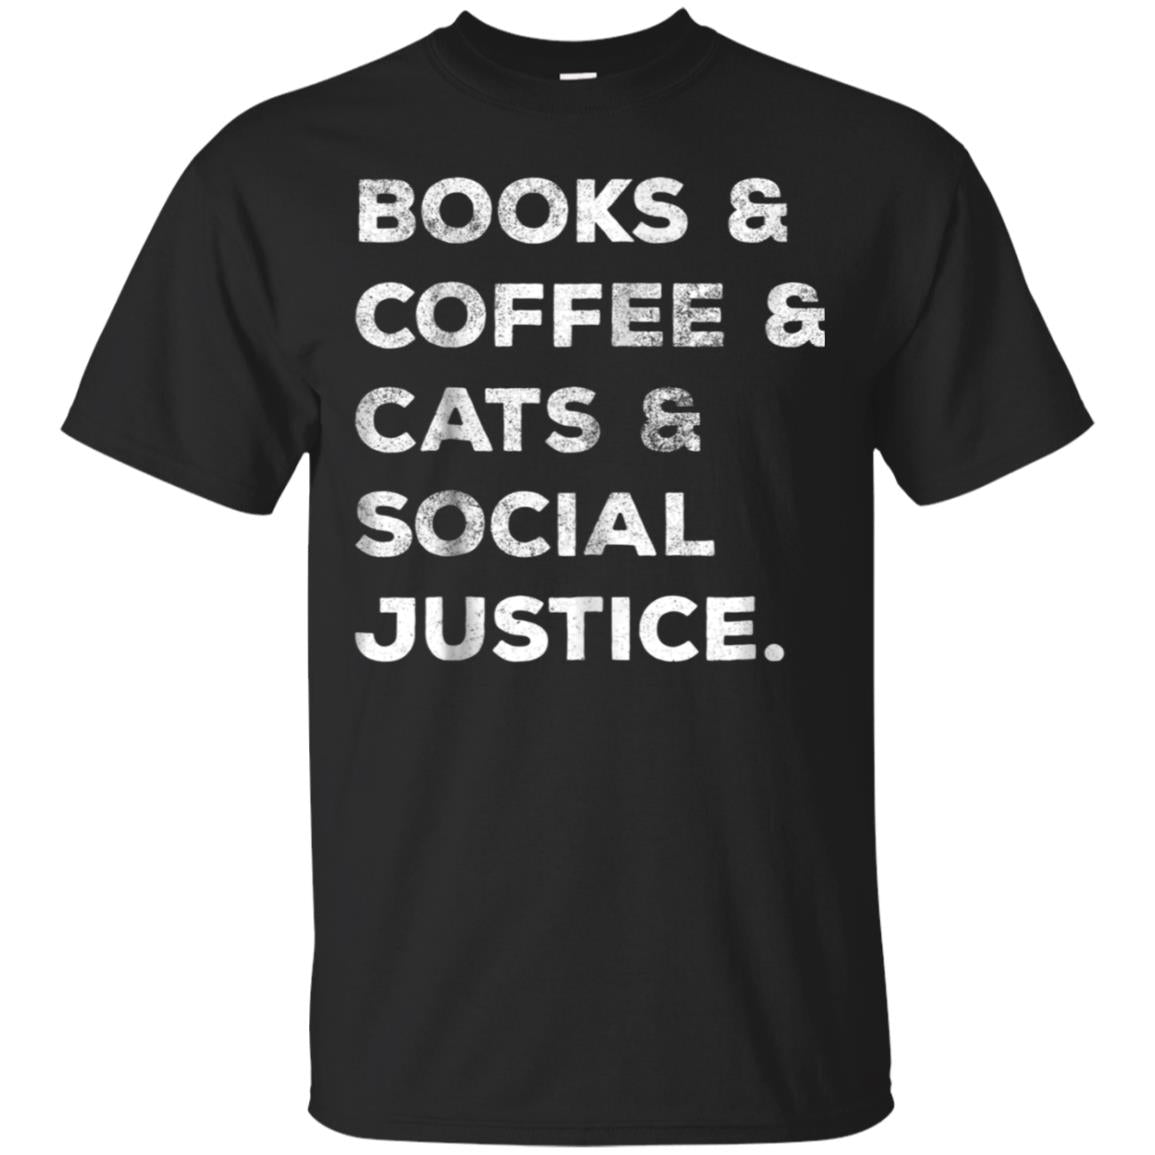 Books & Coffee & Cats & Social Justice Shirt 99promocode